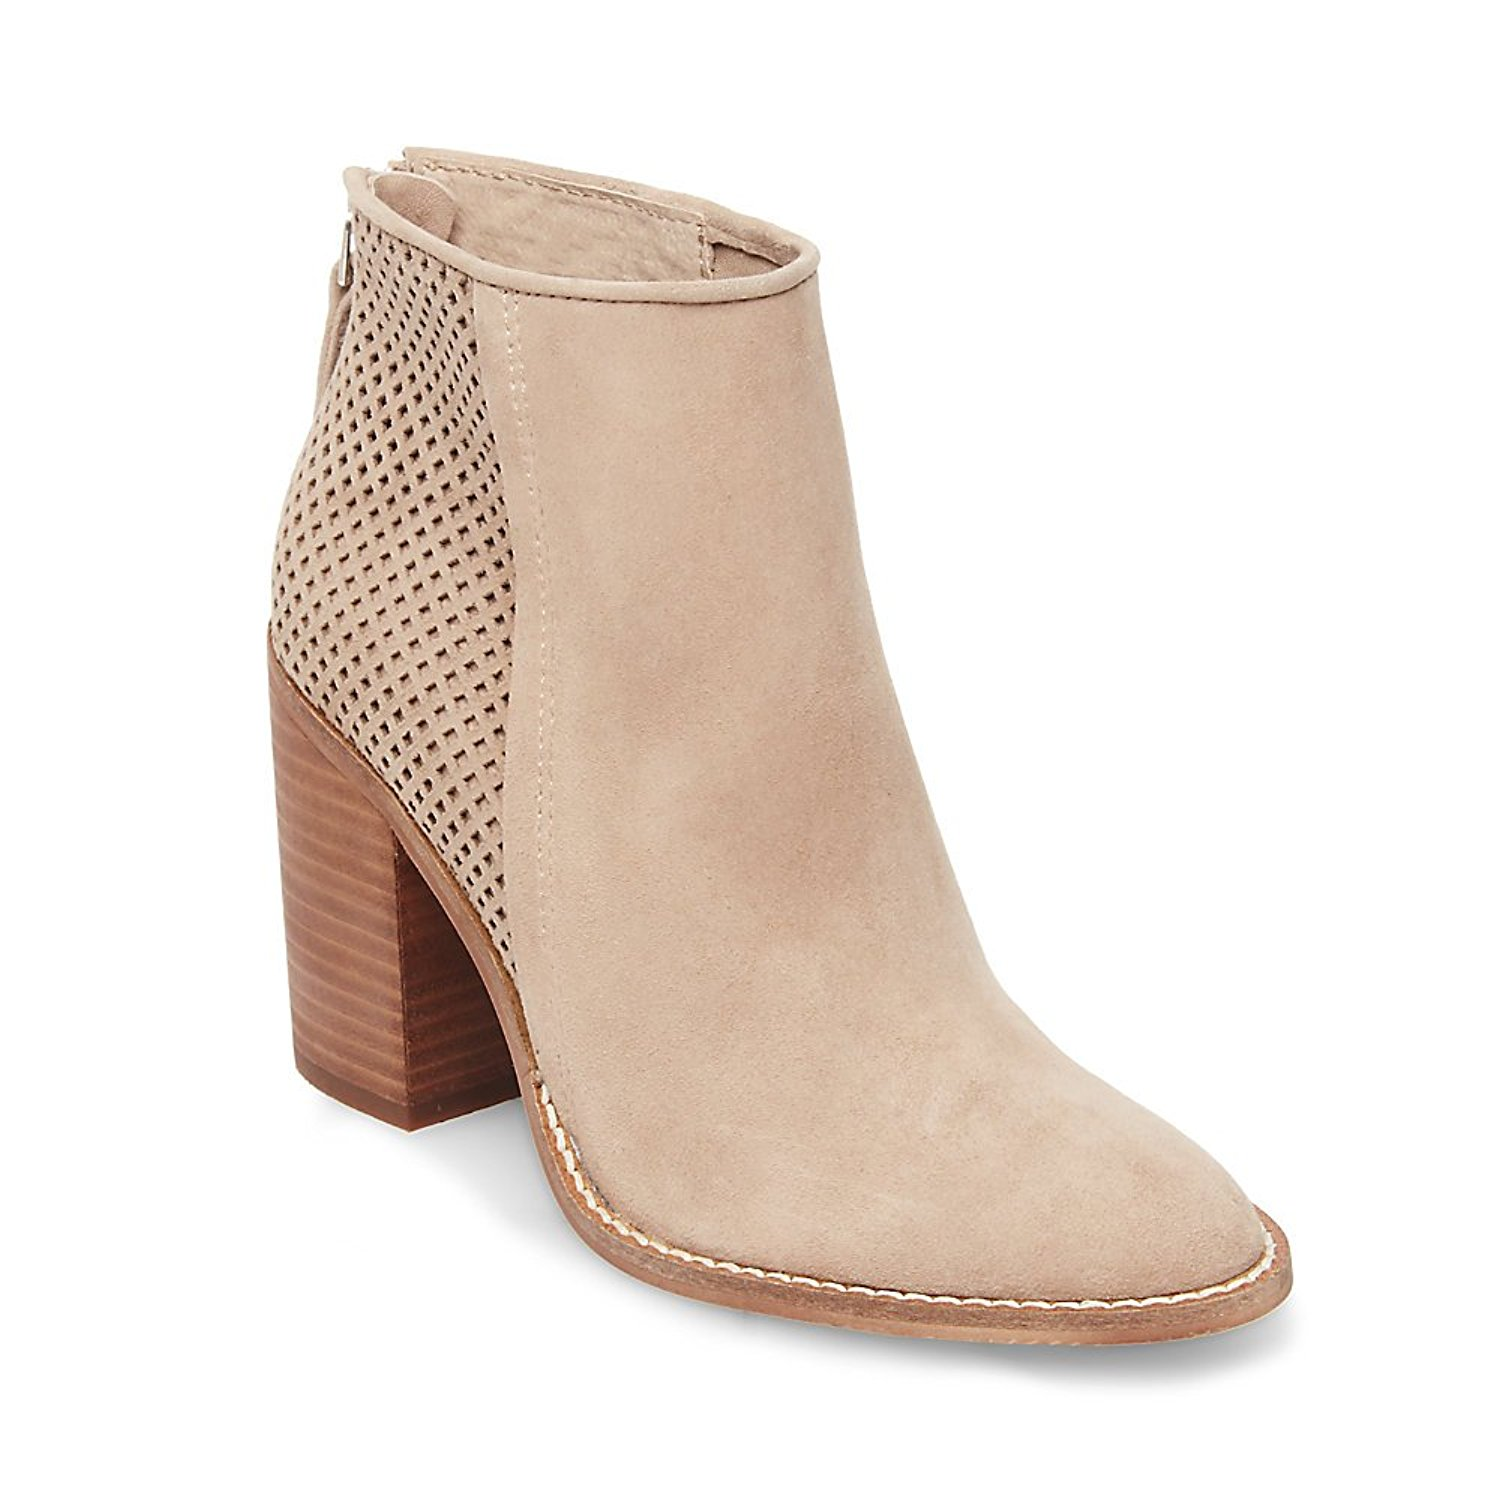 21f40799bf0 Steve Madden Womens Replay Leather Almond Toe Ankle Fashion